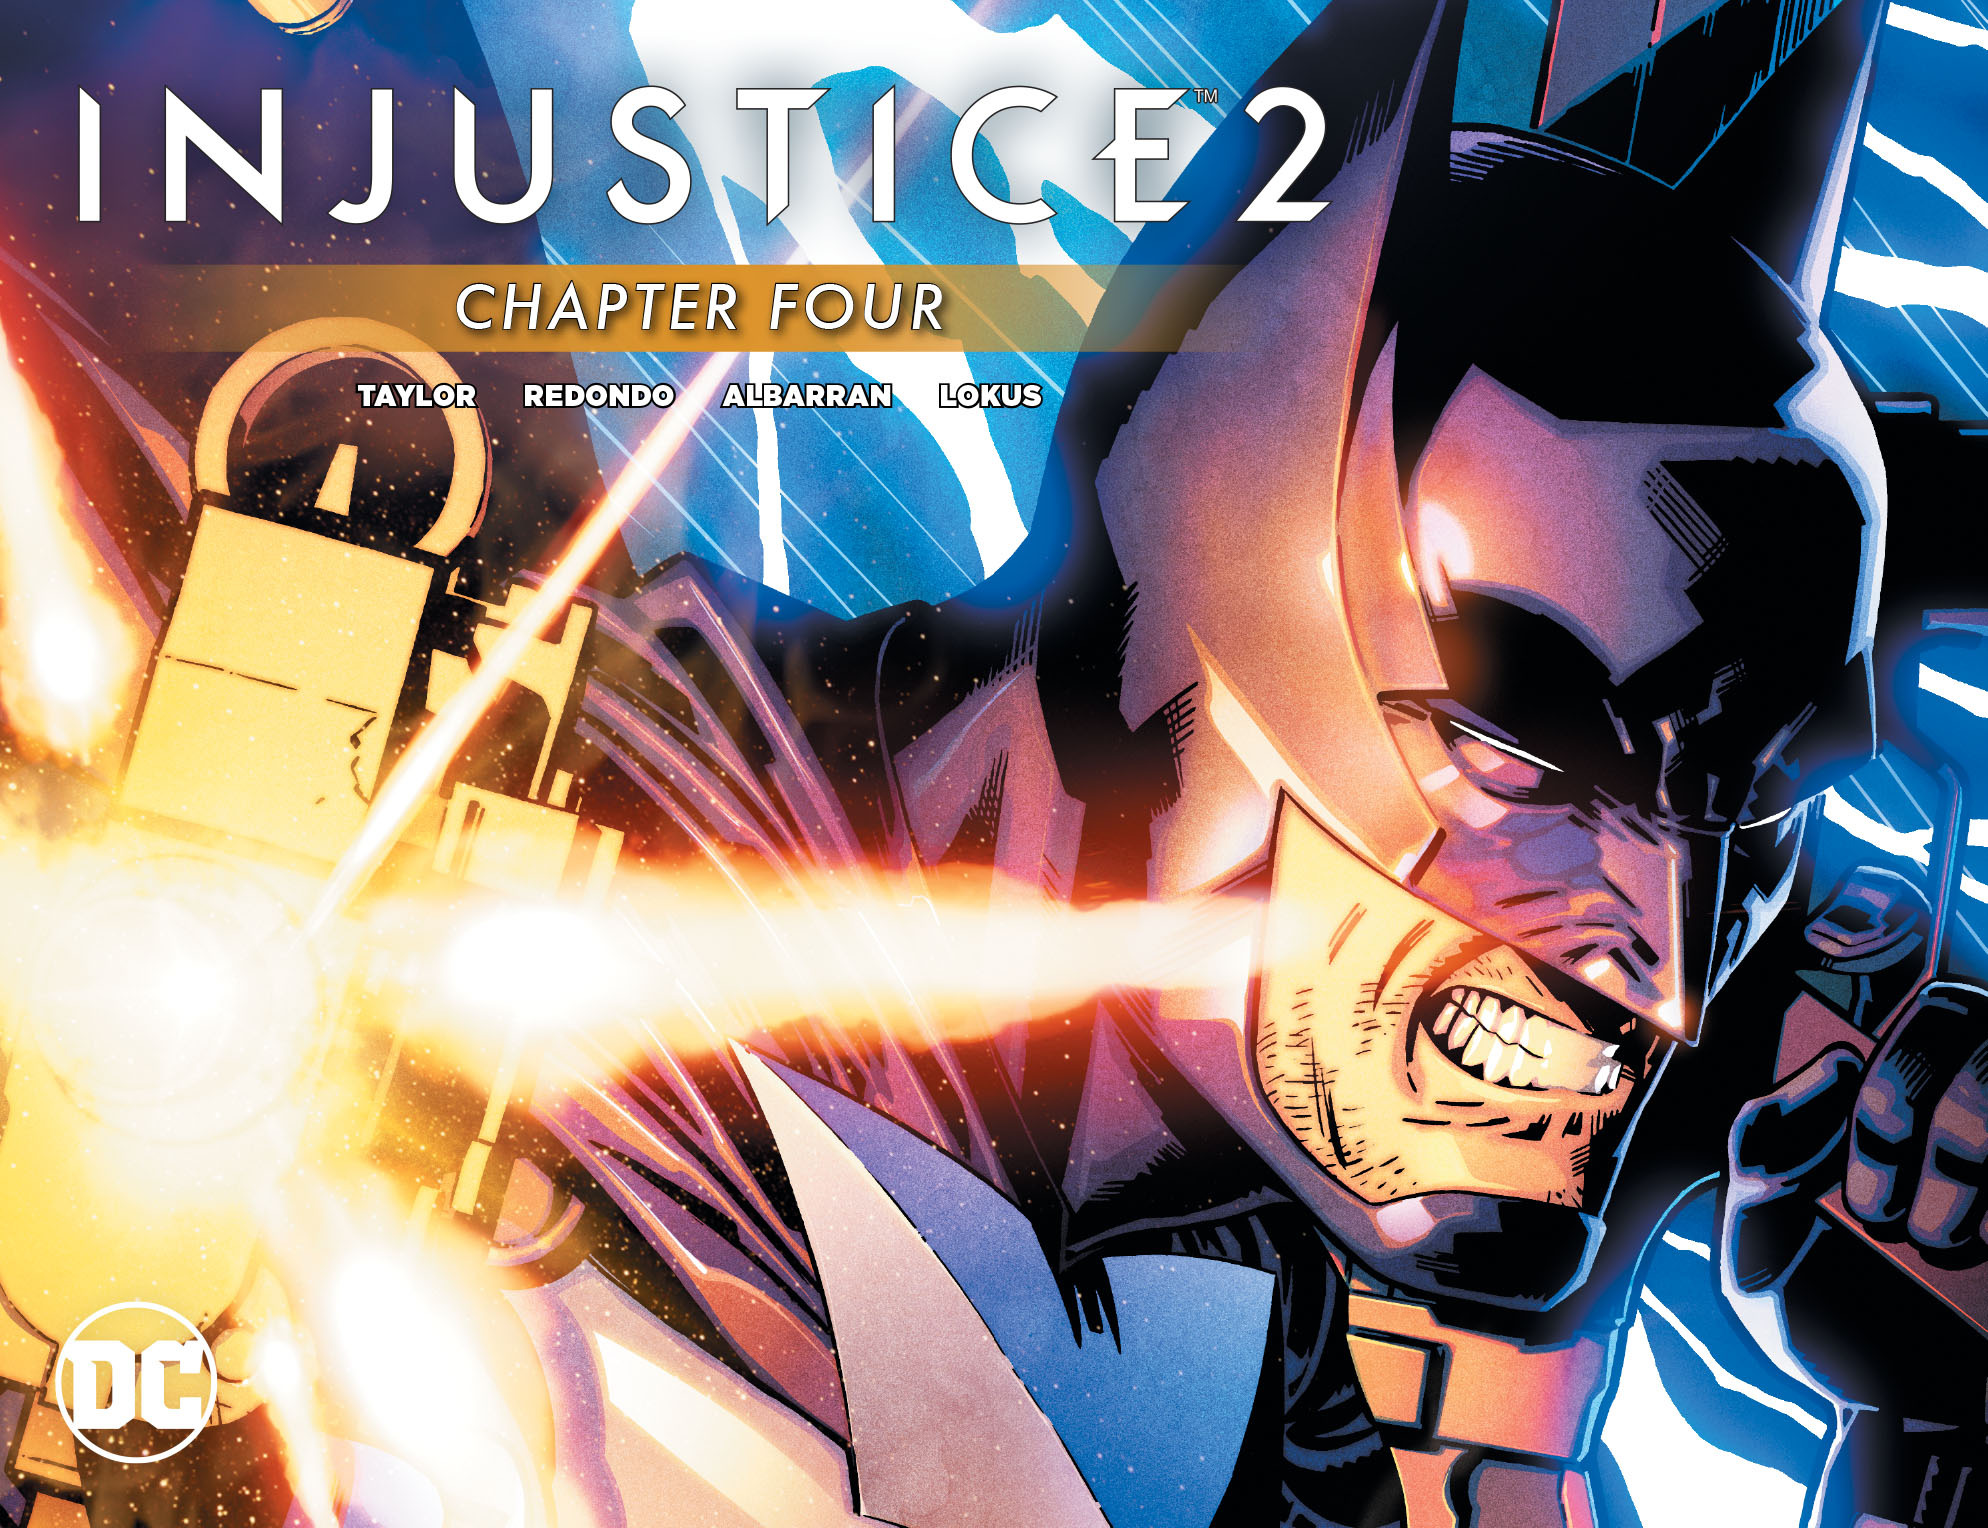 Read online Injustice 2 comic -  Issue #4 - 1